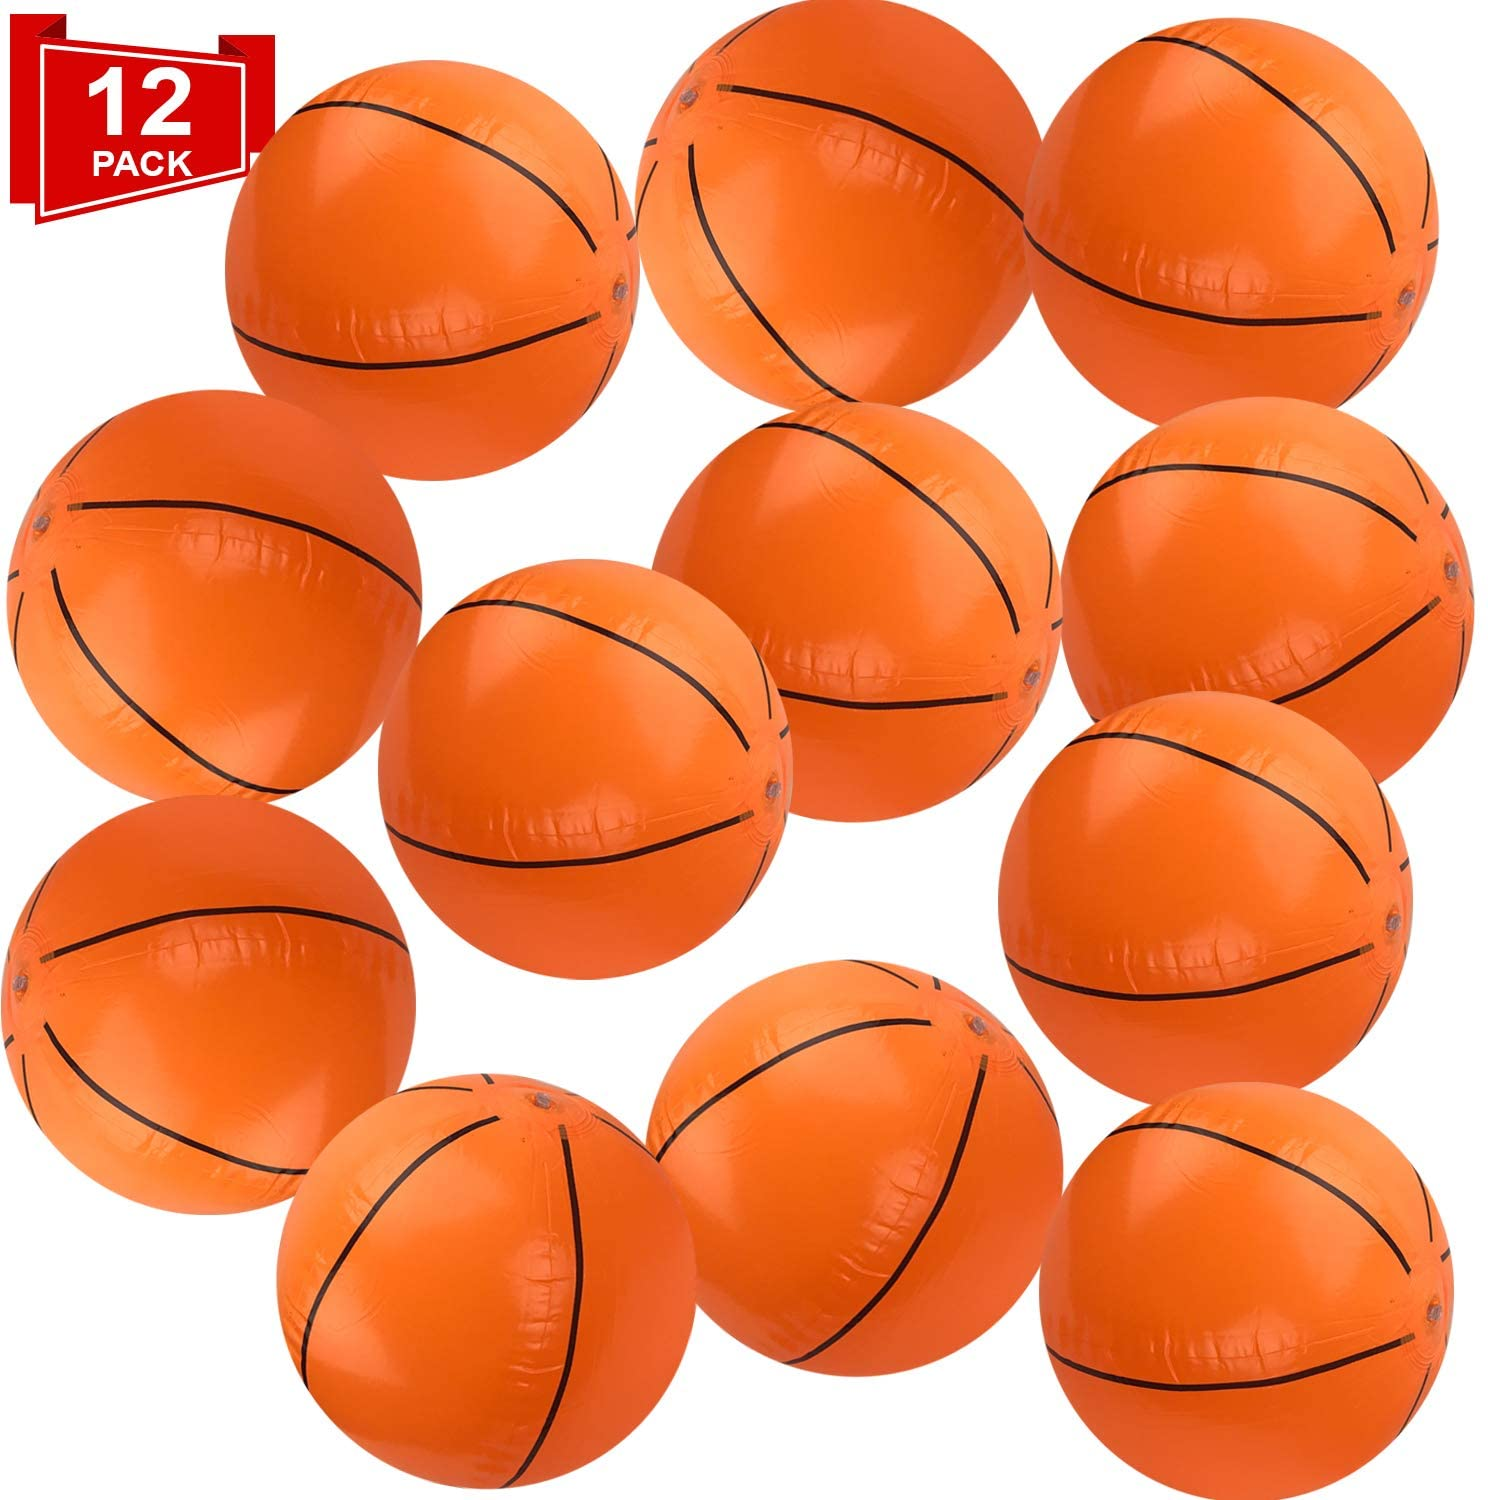 Playko 16 Inch Inflatable Basketballs - Pack of 12 Basketballs for Pool - Inflatable Beach Balls - Pool Basketballs for Summer - Basketball Décor for Sports Themed Parties - Basketball Pinata